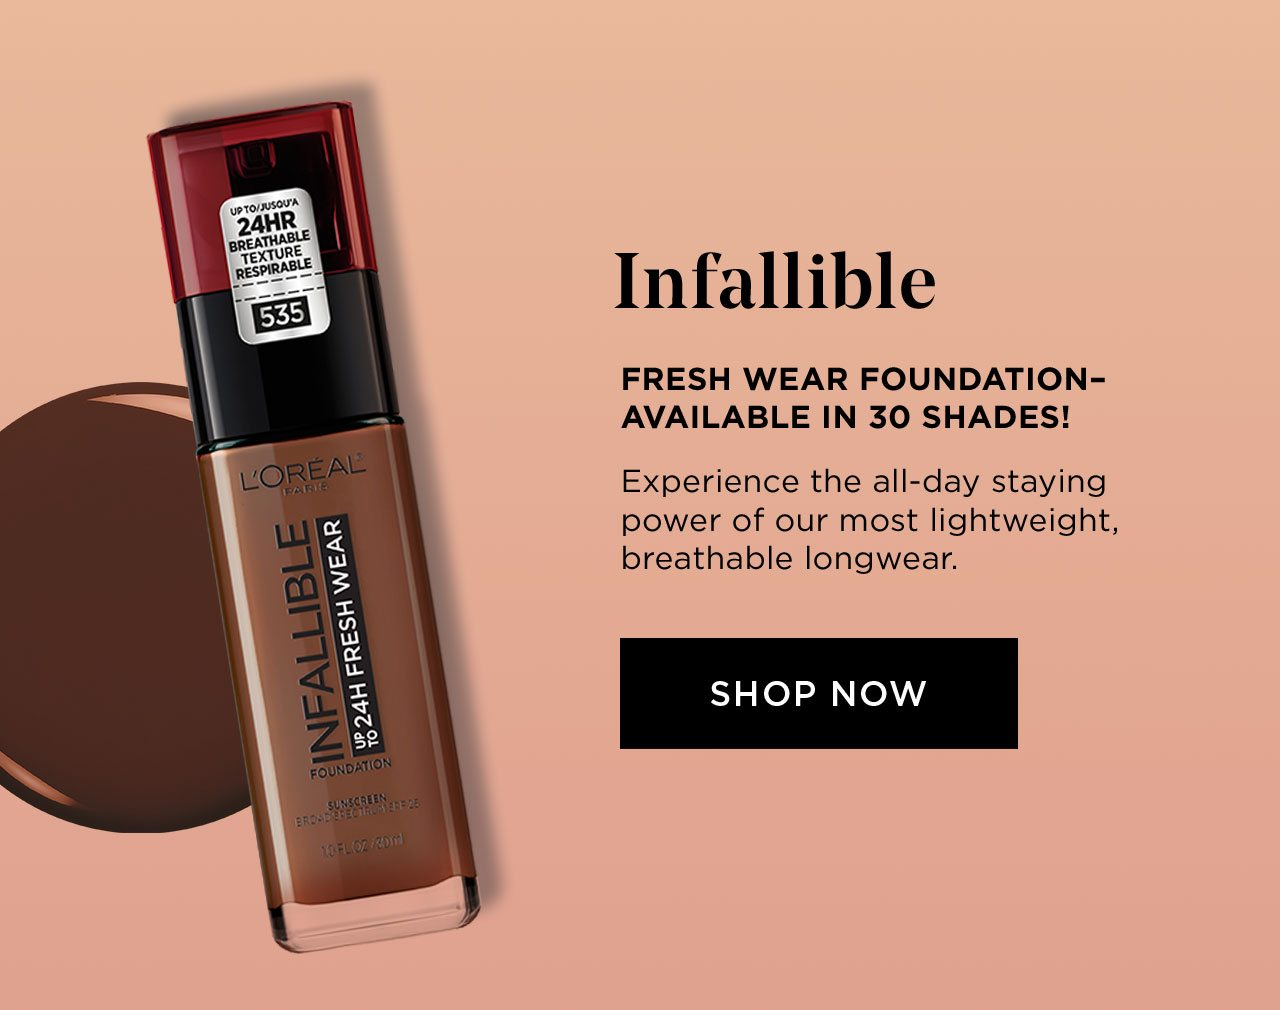 Infallible - FRESH WEAR FOUNDATION–AVAILABLE IN 30 SHADES! - Experience the all-day staying power of our most lightweight, breathable longwear. - SHOP NOW